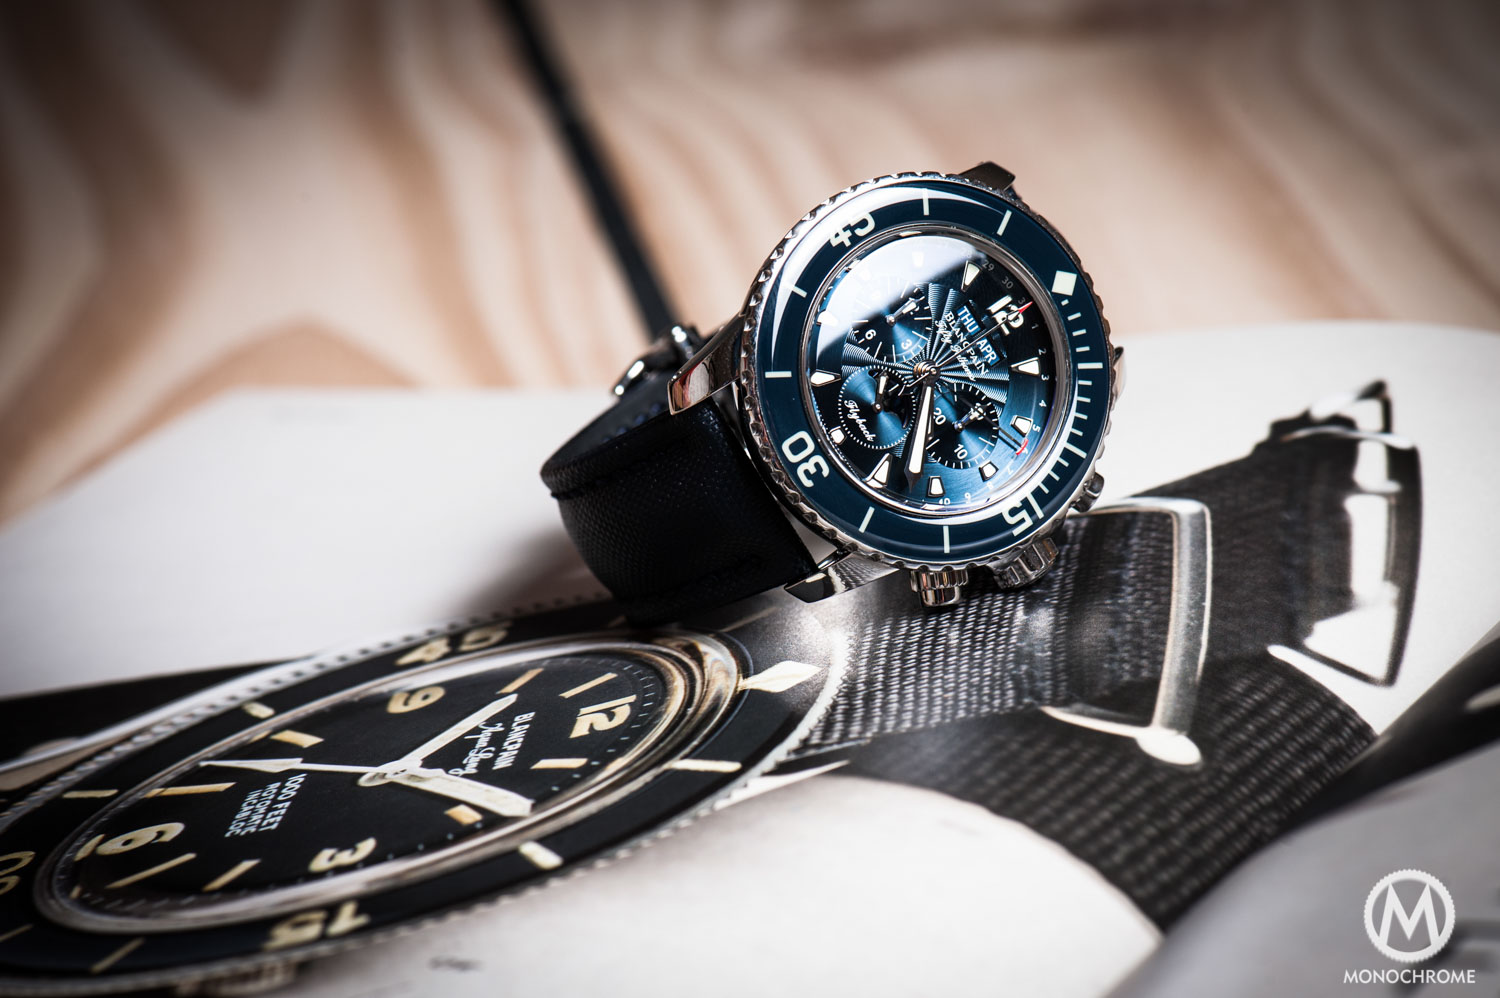 Blancpain Fifty Fathoms Chronographe Flyback Quantieme Complet